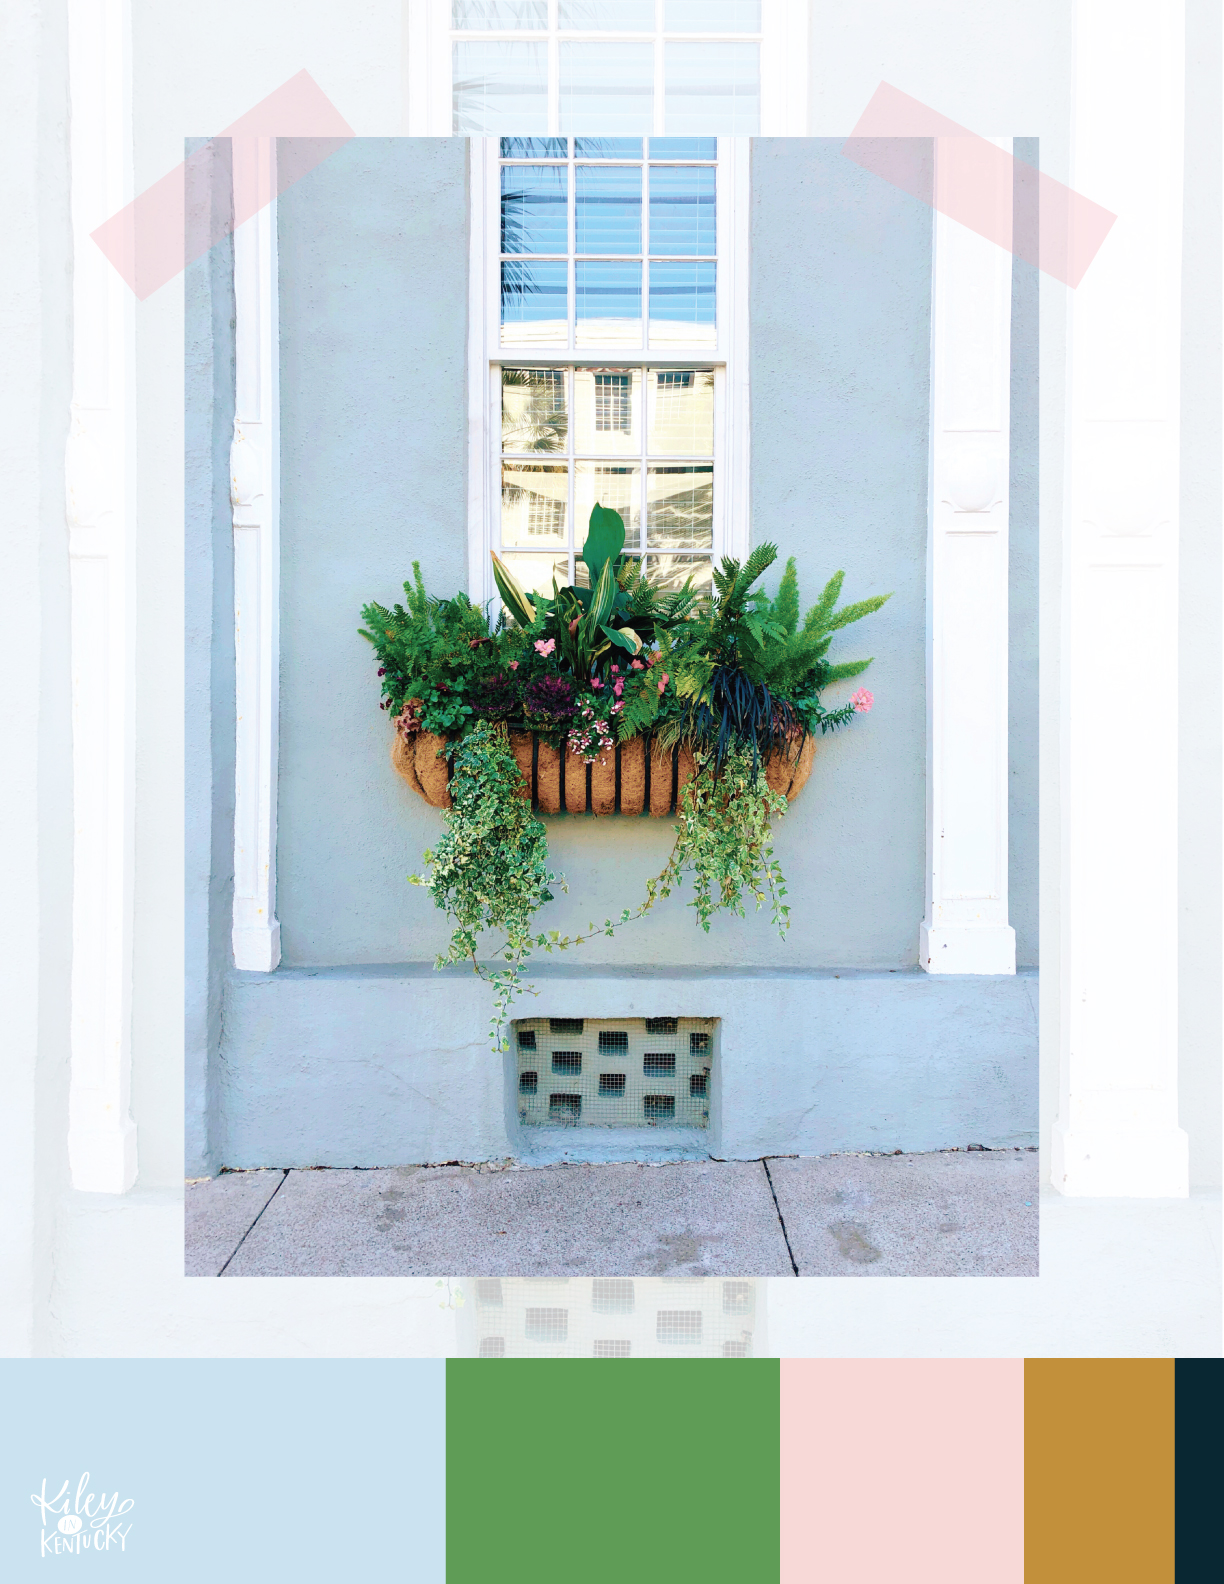 Charleston has the most beautiful, lush window boxes ever! I hope my thumb is green enough for some in my future home.